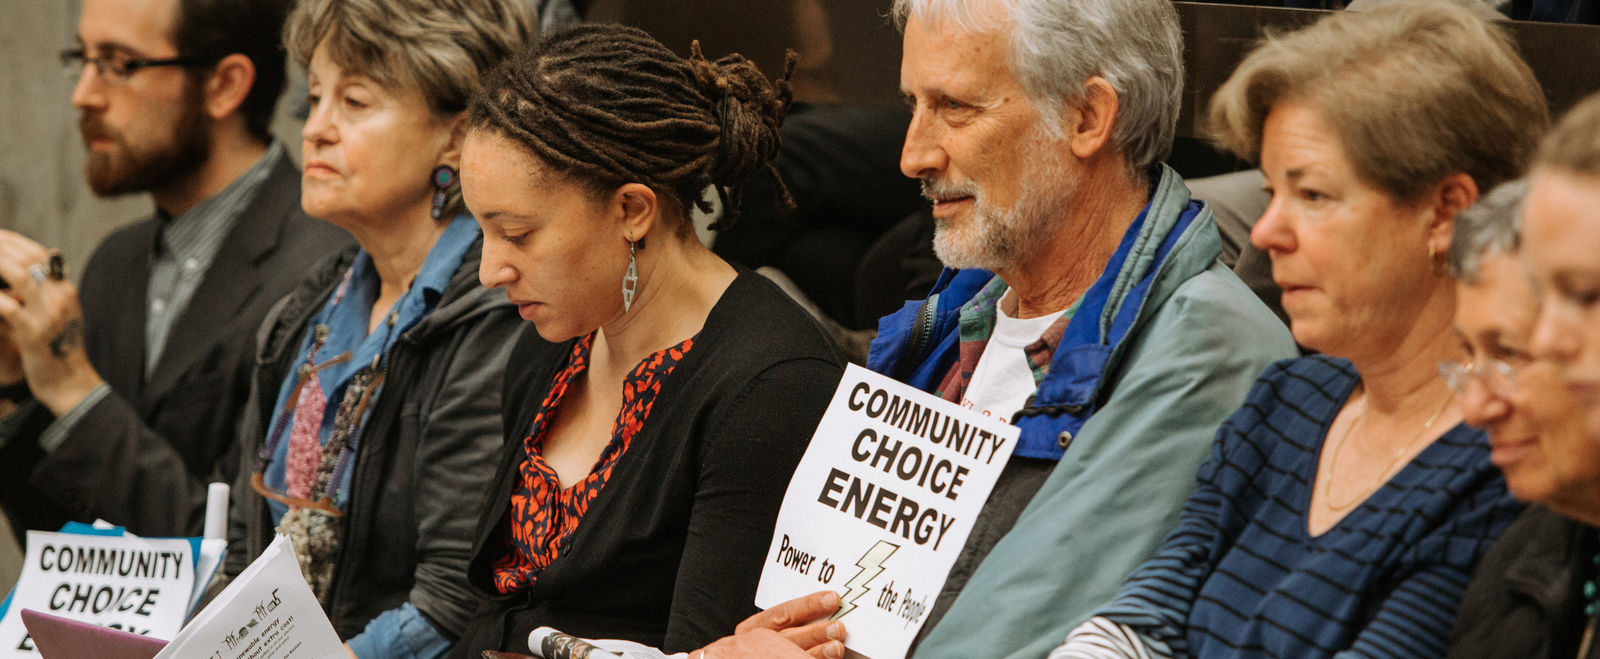 Activists sit and hold signs at the CCE city council meeting.